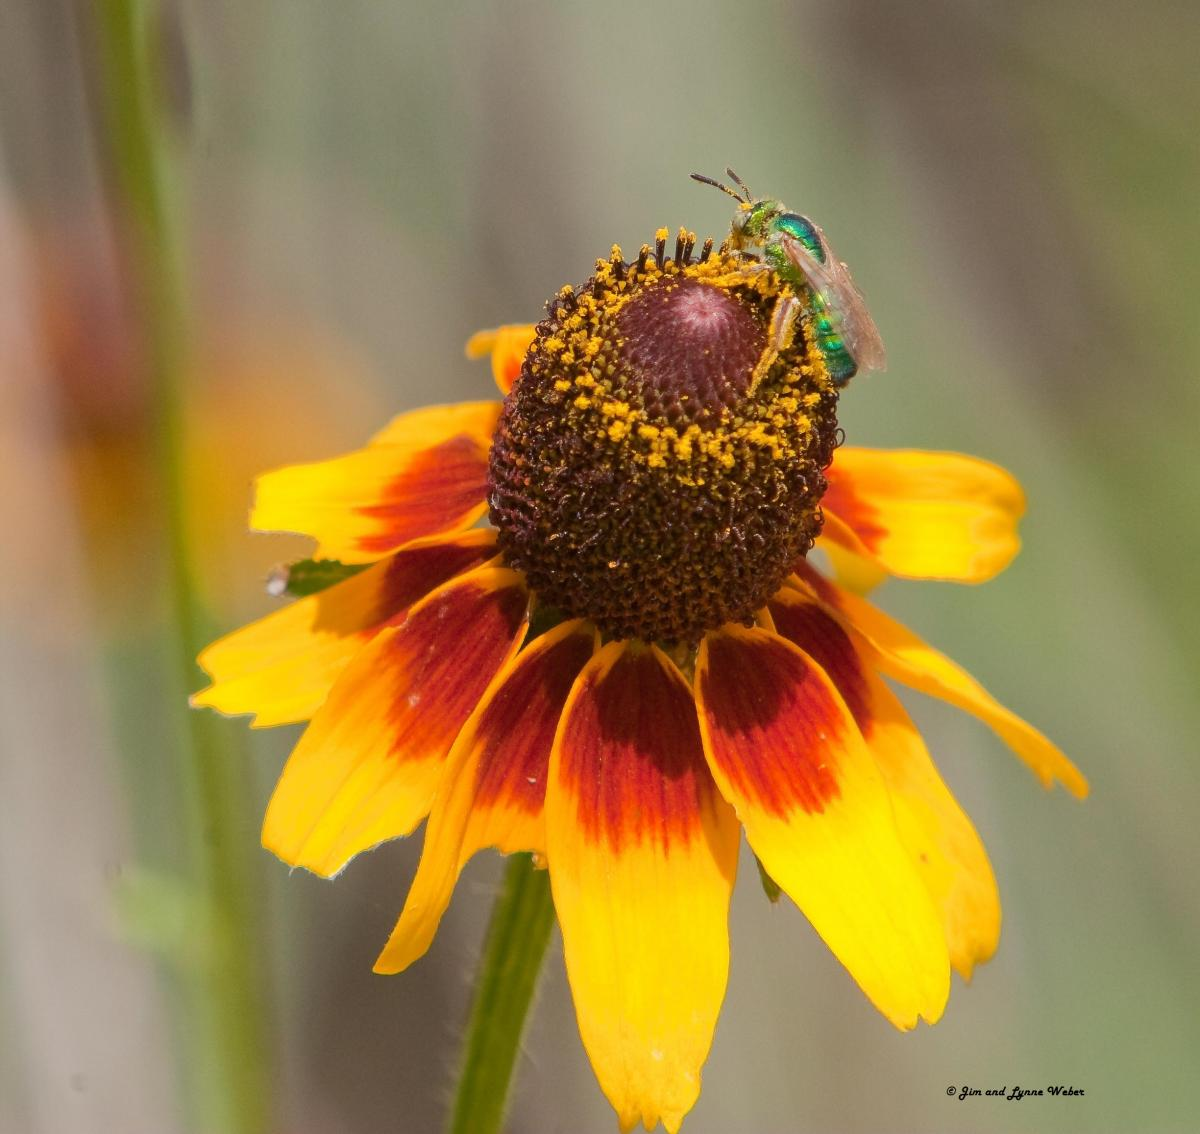 Black-eyed Susan (Rudbeckia hirta) by Jim and Lynne Weber